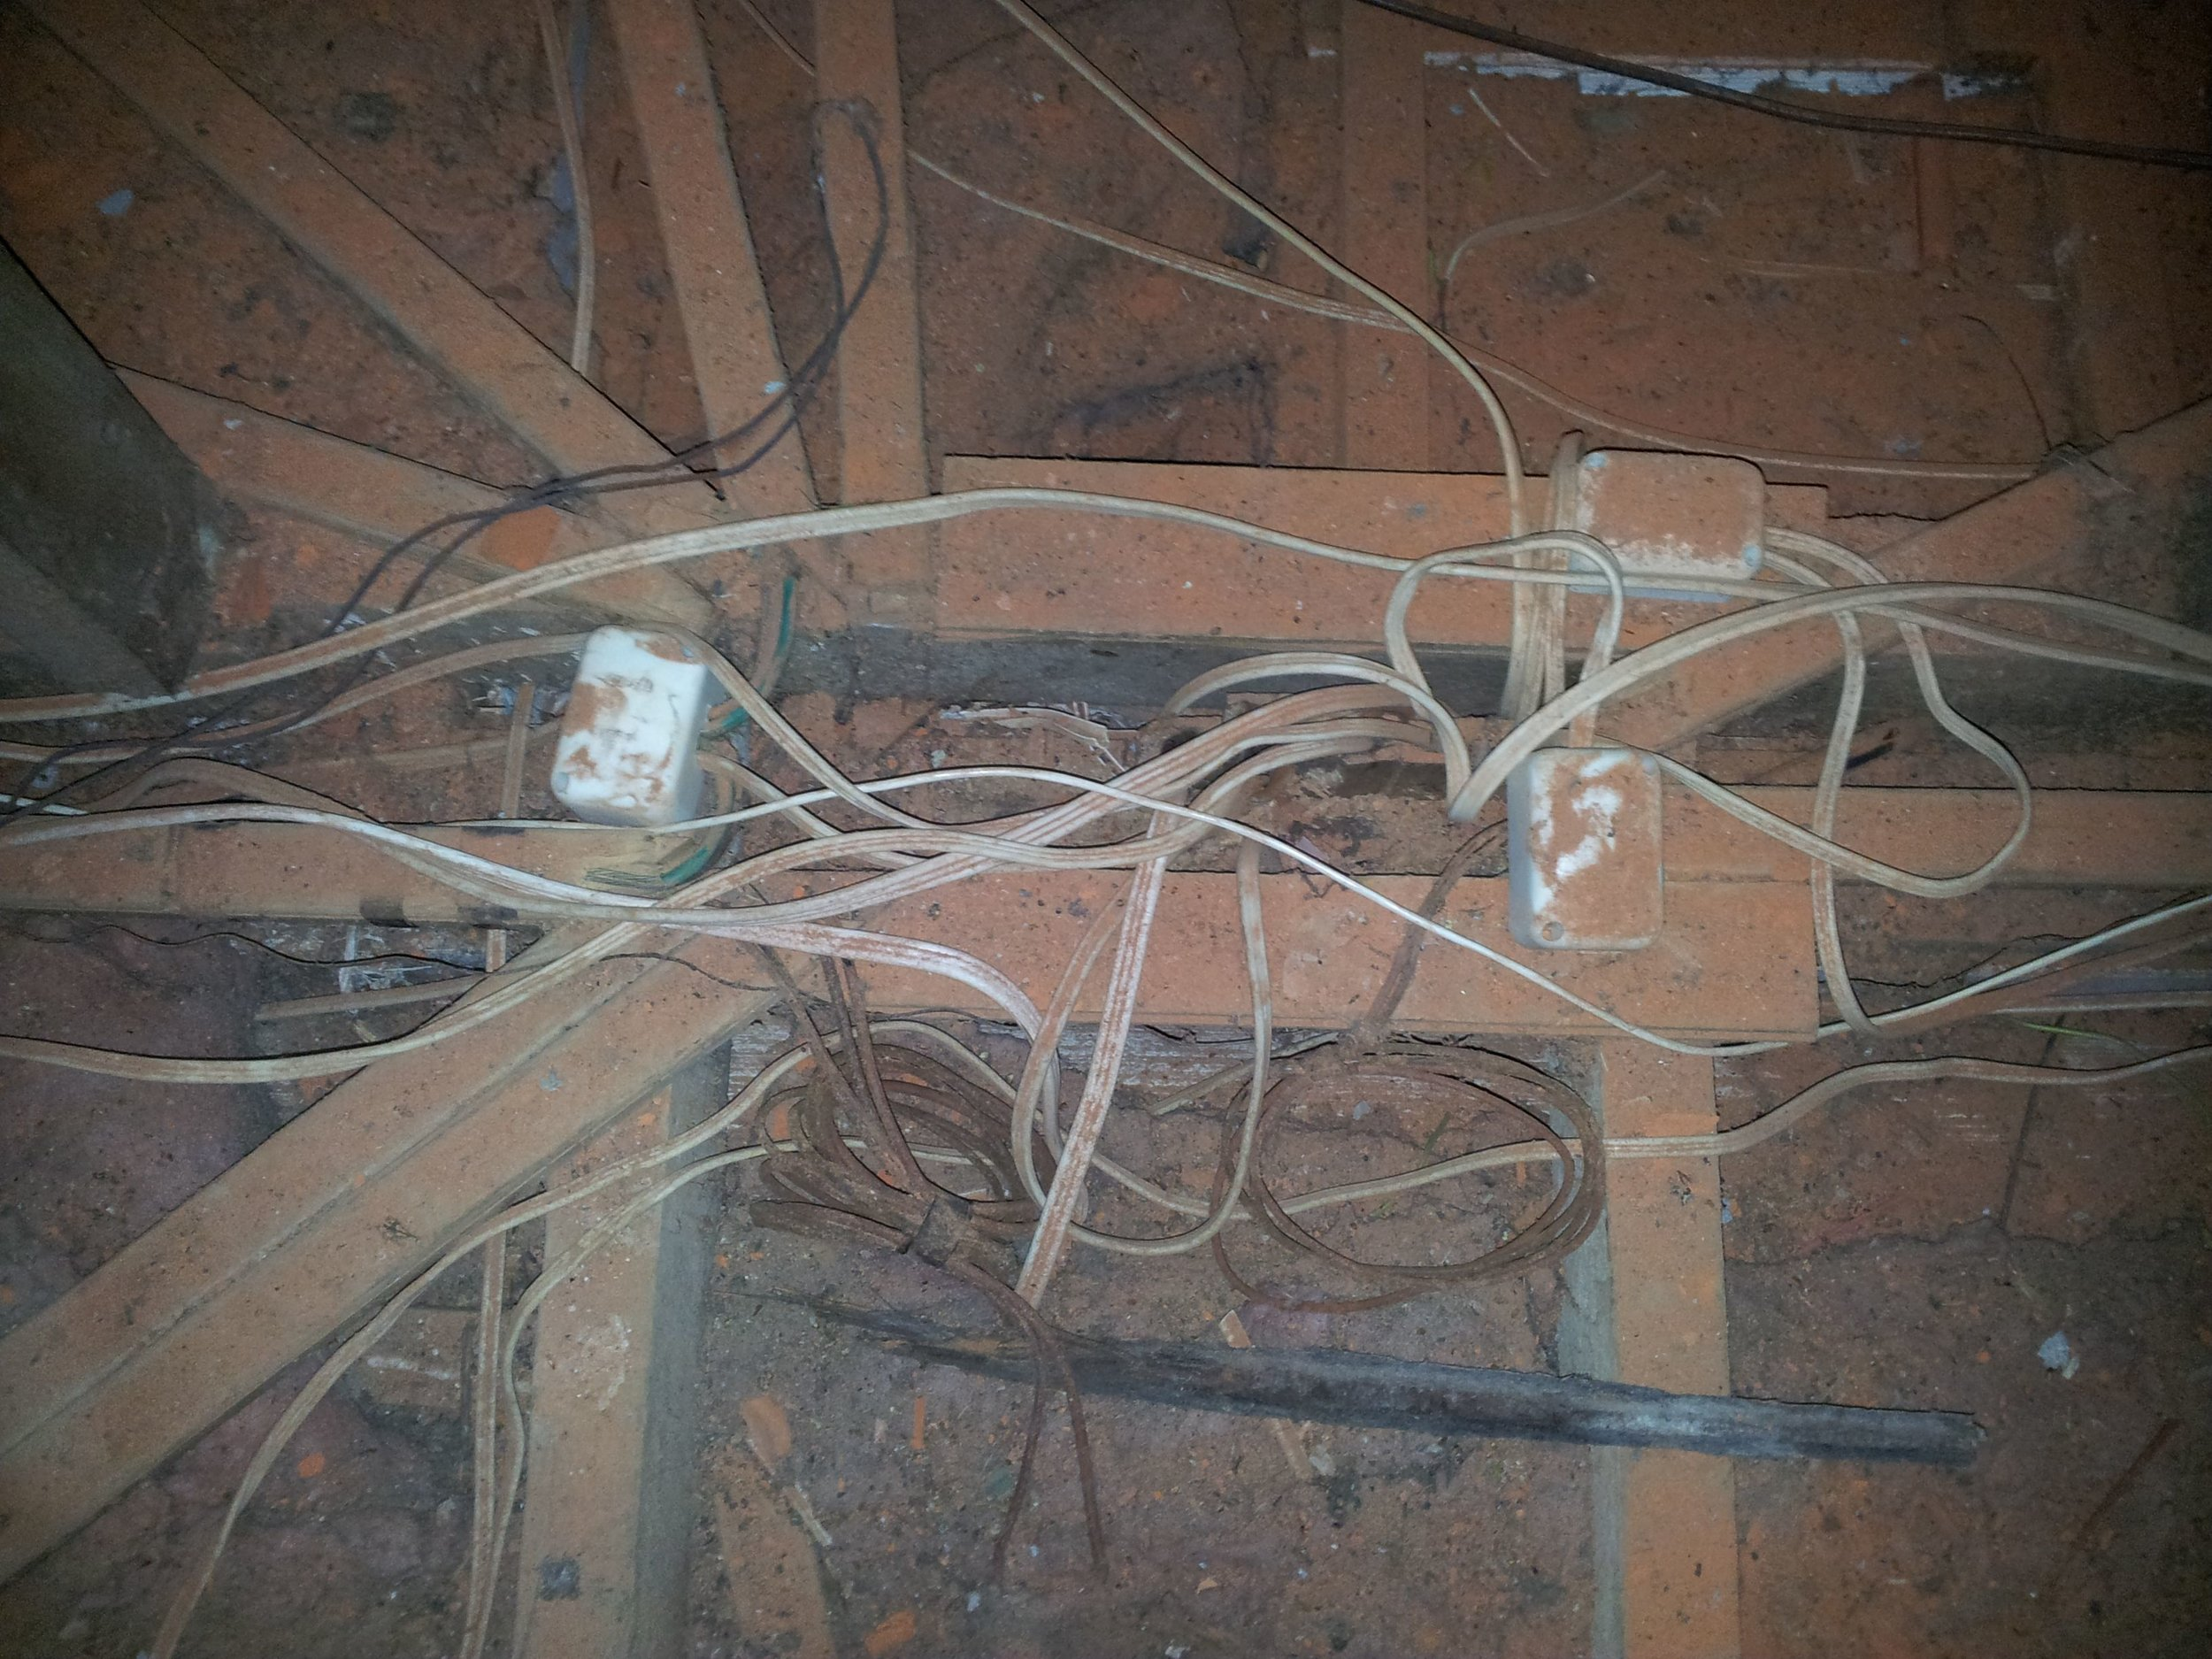 poor_roof_wiring2.jpg